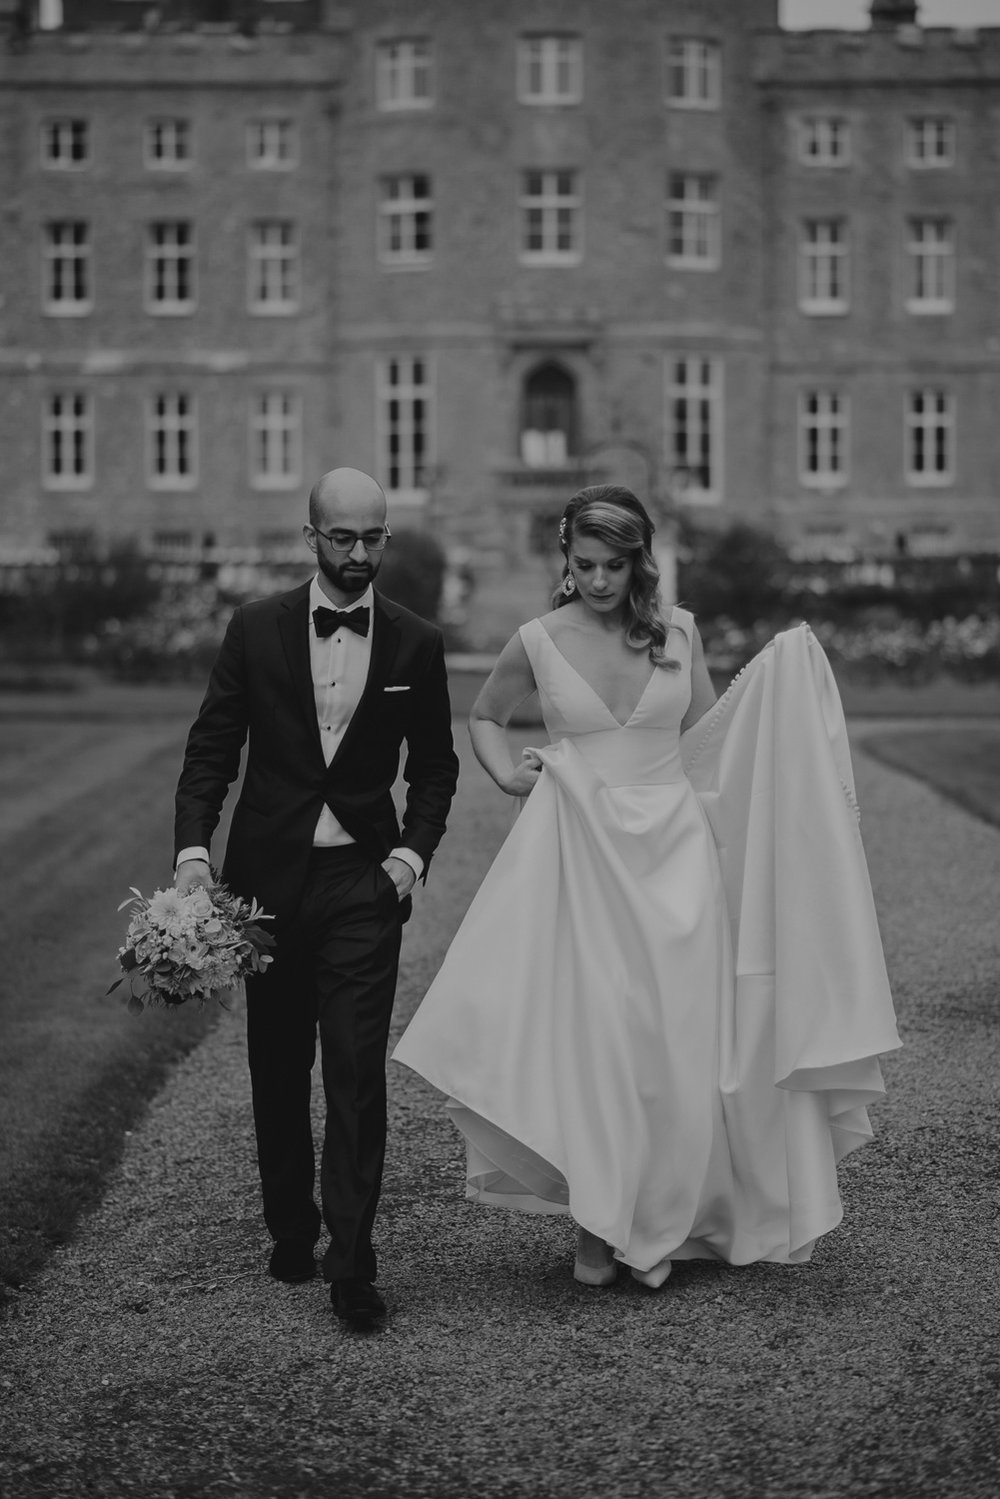 Markree castle wedding photographs -34.jpg